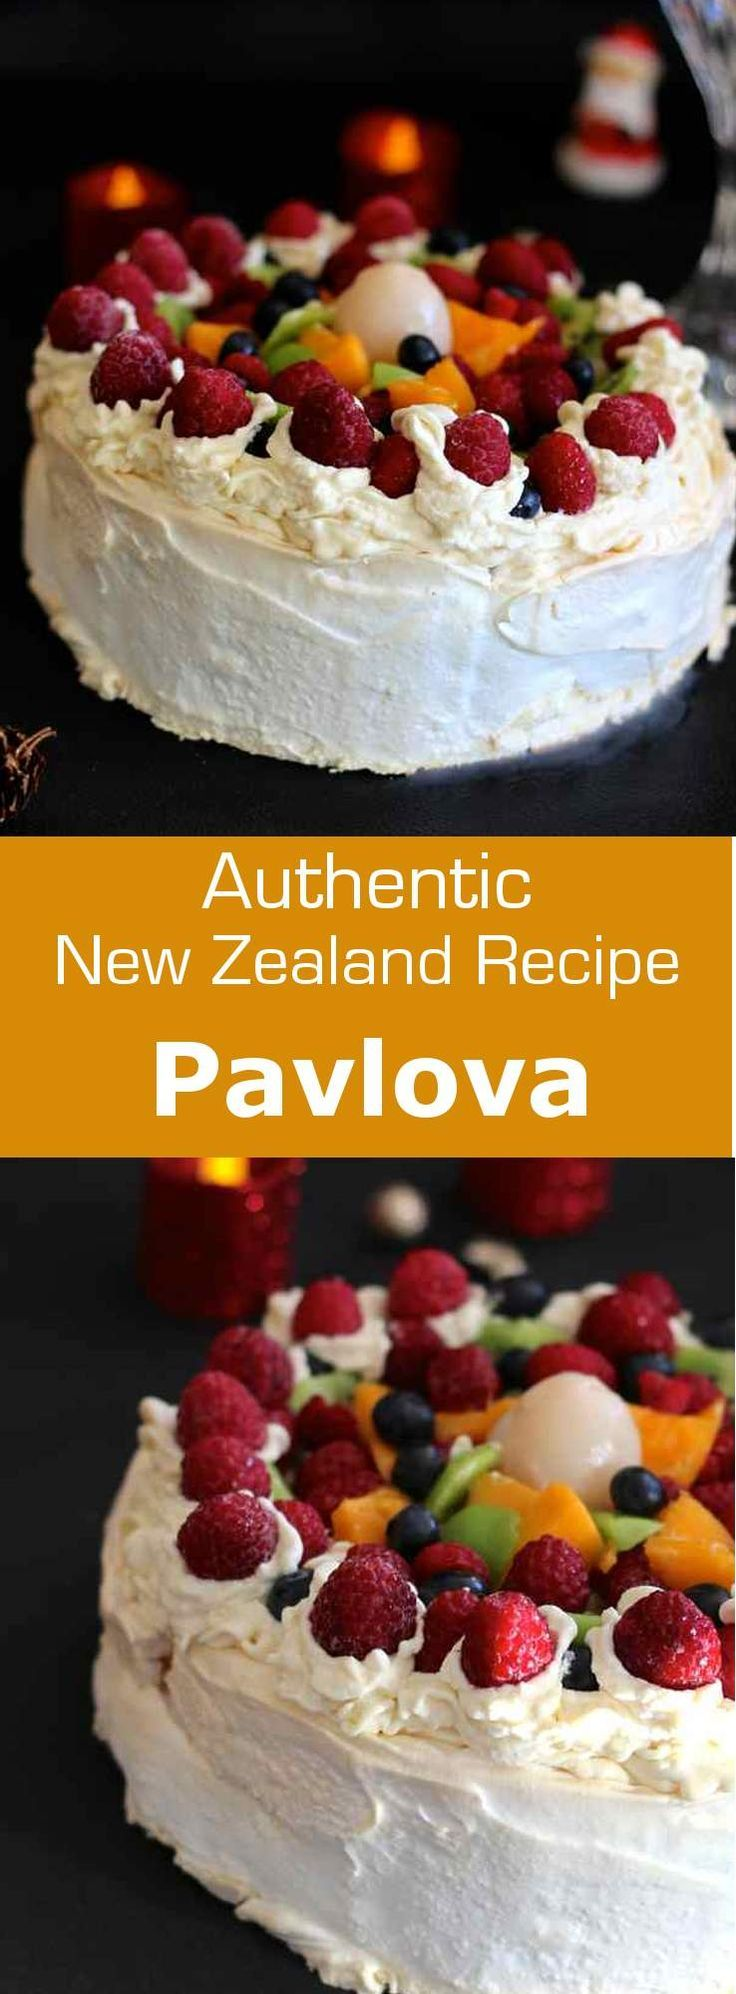 Pavlova is the emblematic dessert from New Zealand named after Russian ballerina Anna Pavlova, with meringue and topped with fresh fruits. #Christmas #dessert #NewZealand #Australia #196flavors (scheduled via http://www.tailwindapp.com?utm_source=pinterest&utm_medium=twpin&utm_content=post81646515&utm_campaign=scheduler_attribution)